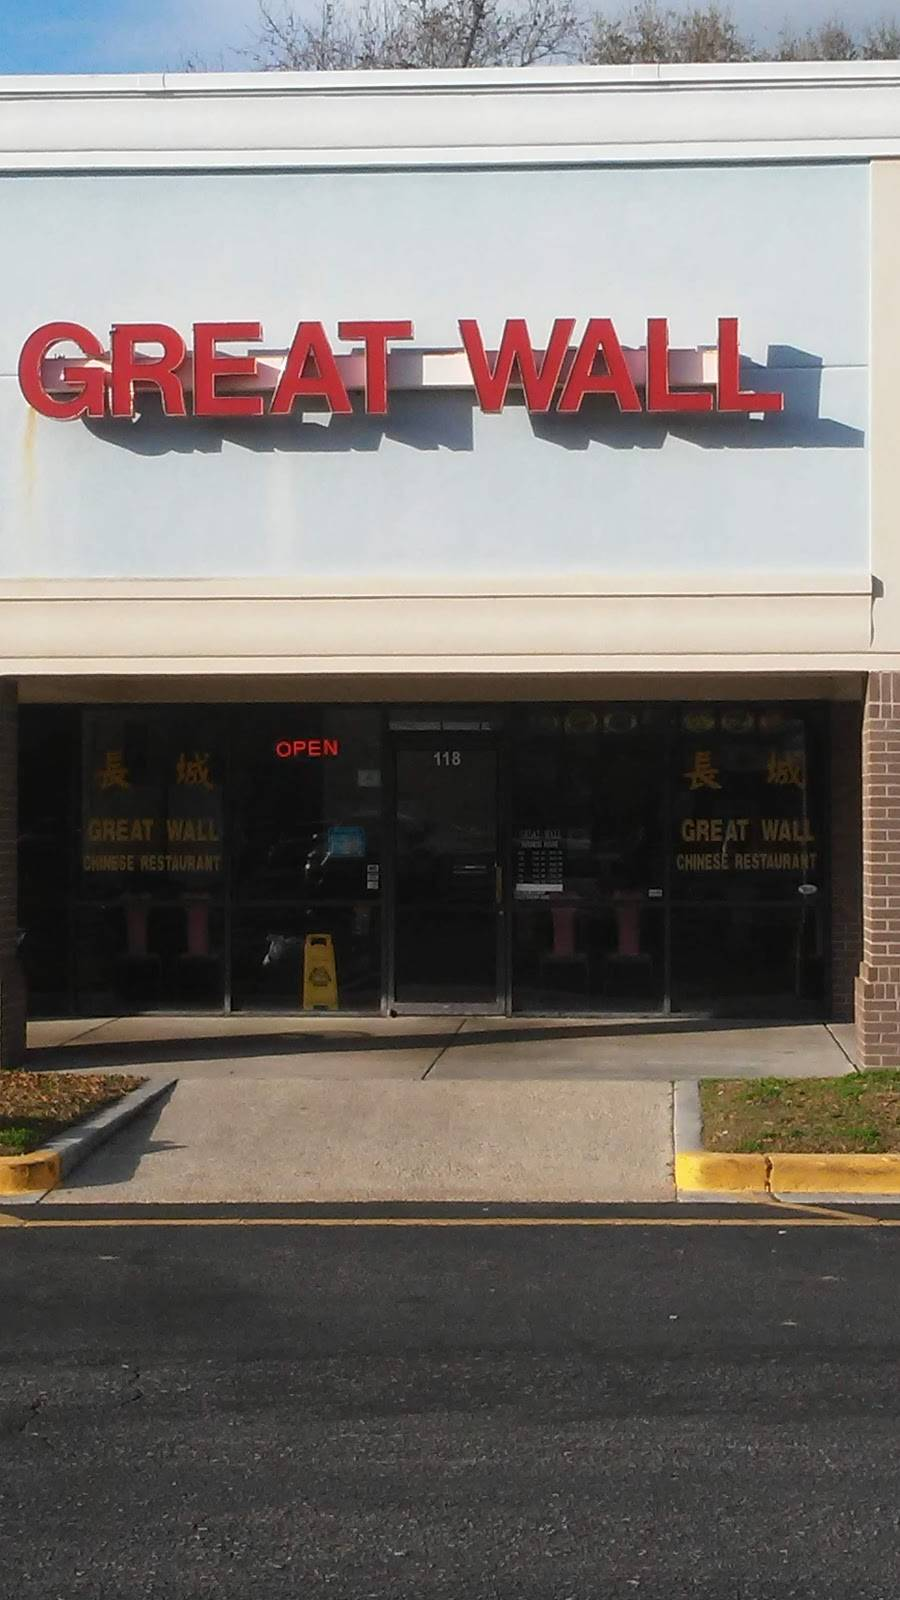 Great Wall | restaurant | 1291 Folly Rd Suite 118, Charleston, SC 29412, USA | 8437621726 OR +1 843-762-1726